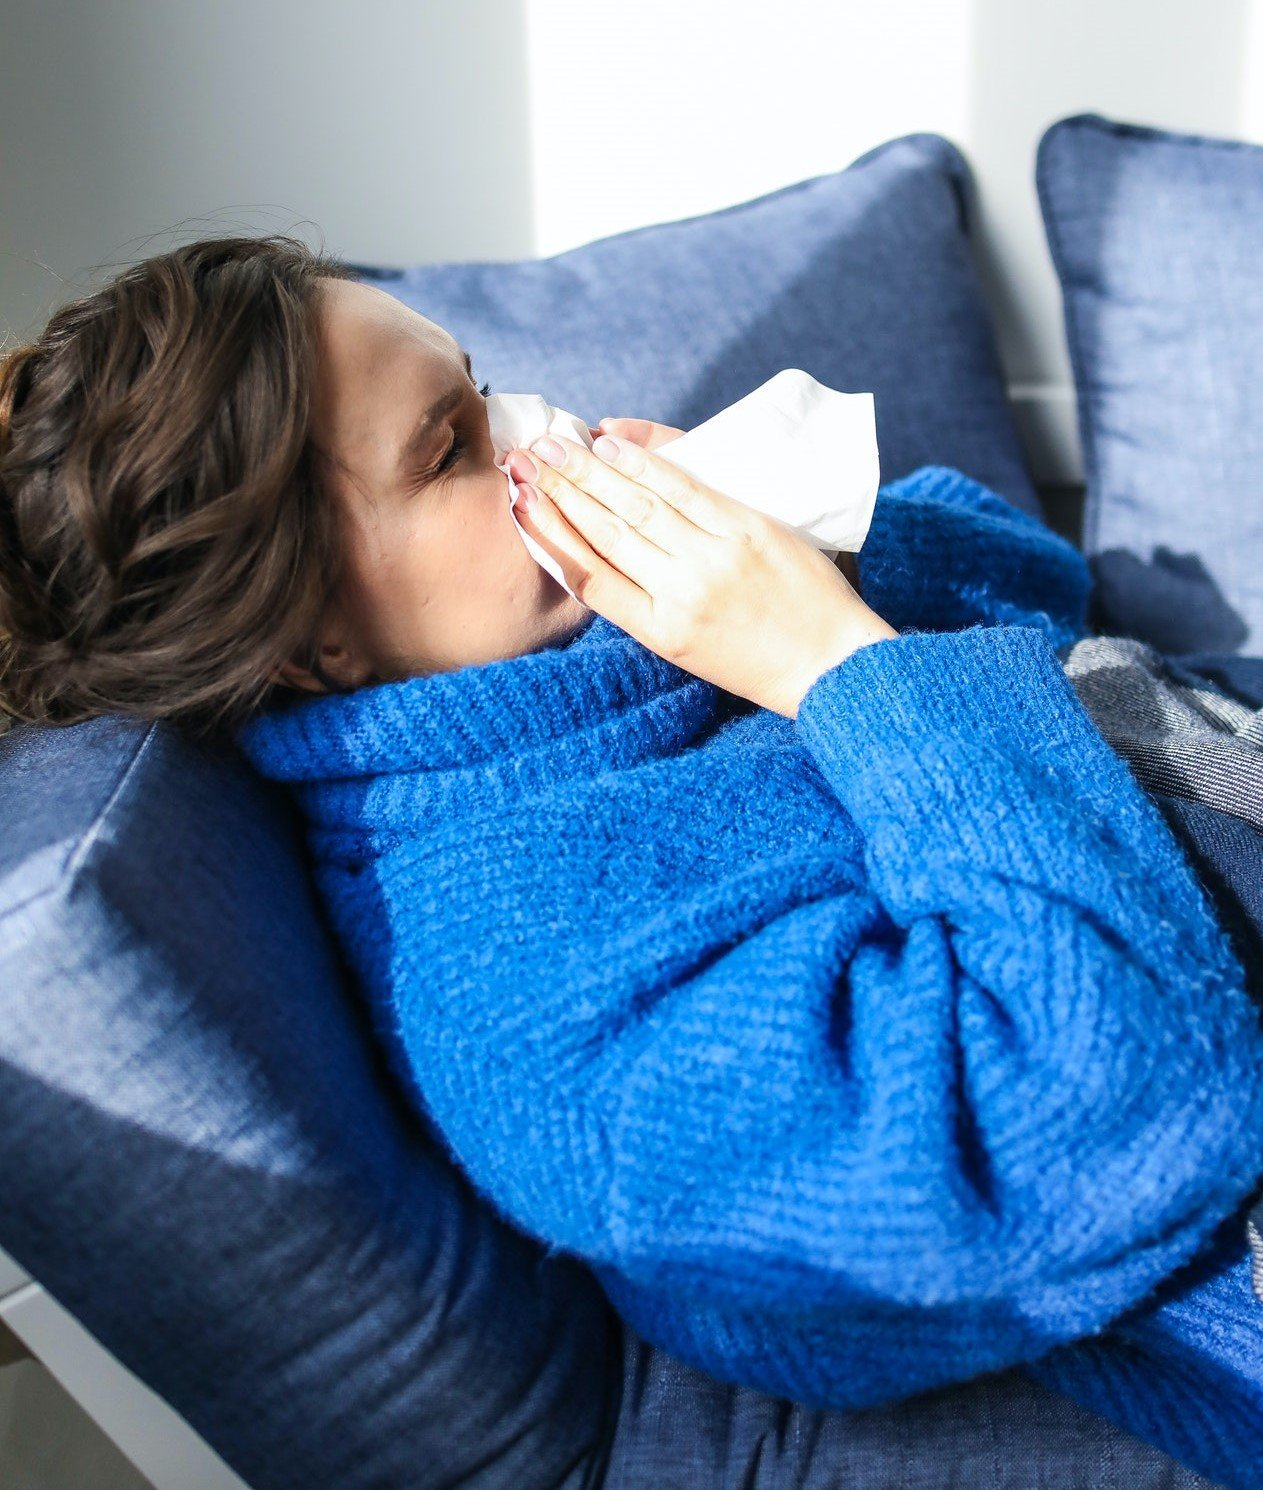 The Common Cold 'Friend or Foe'